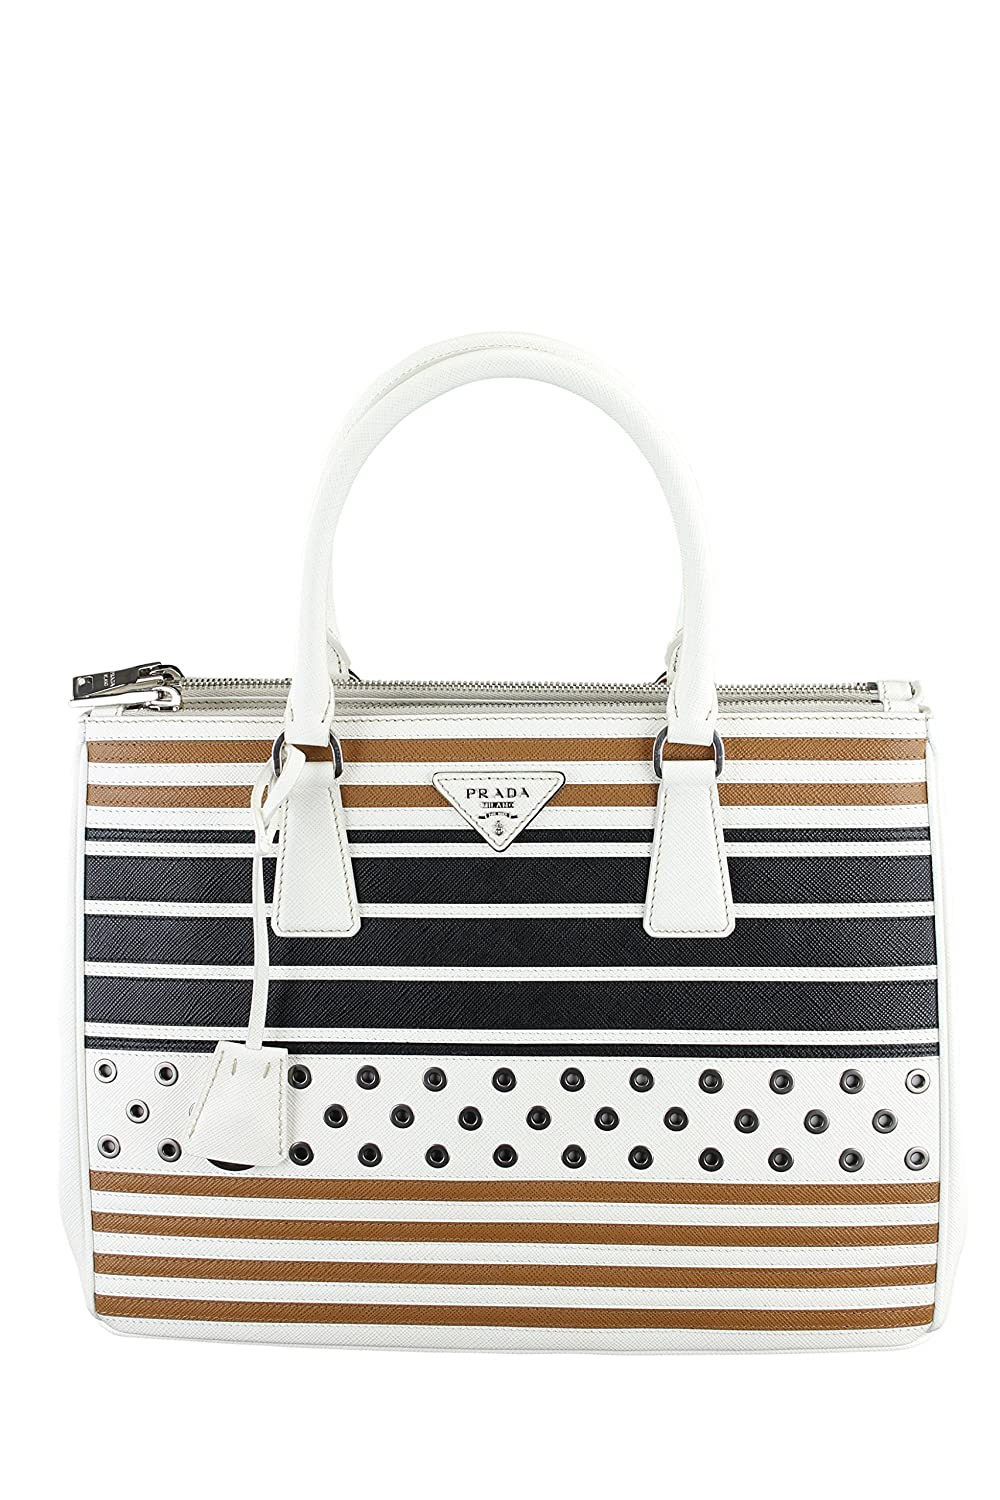 532a7ae2f802c1 ... top quality amazon prada womens double zip saffiano grommets tote white  black clothing 9ad39 1db22